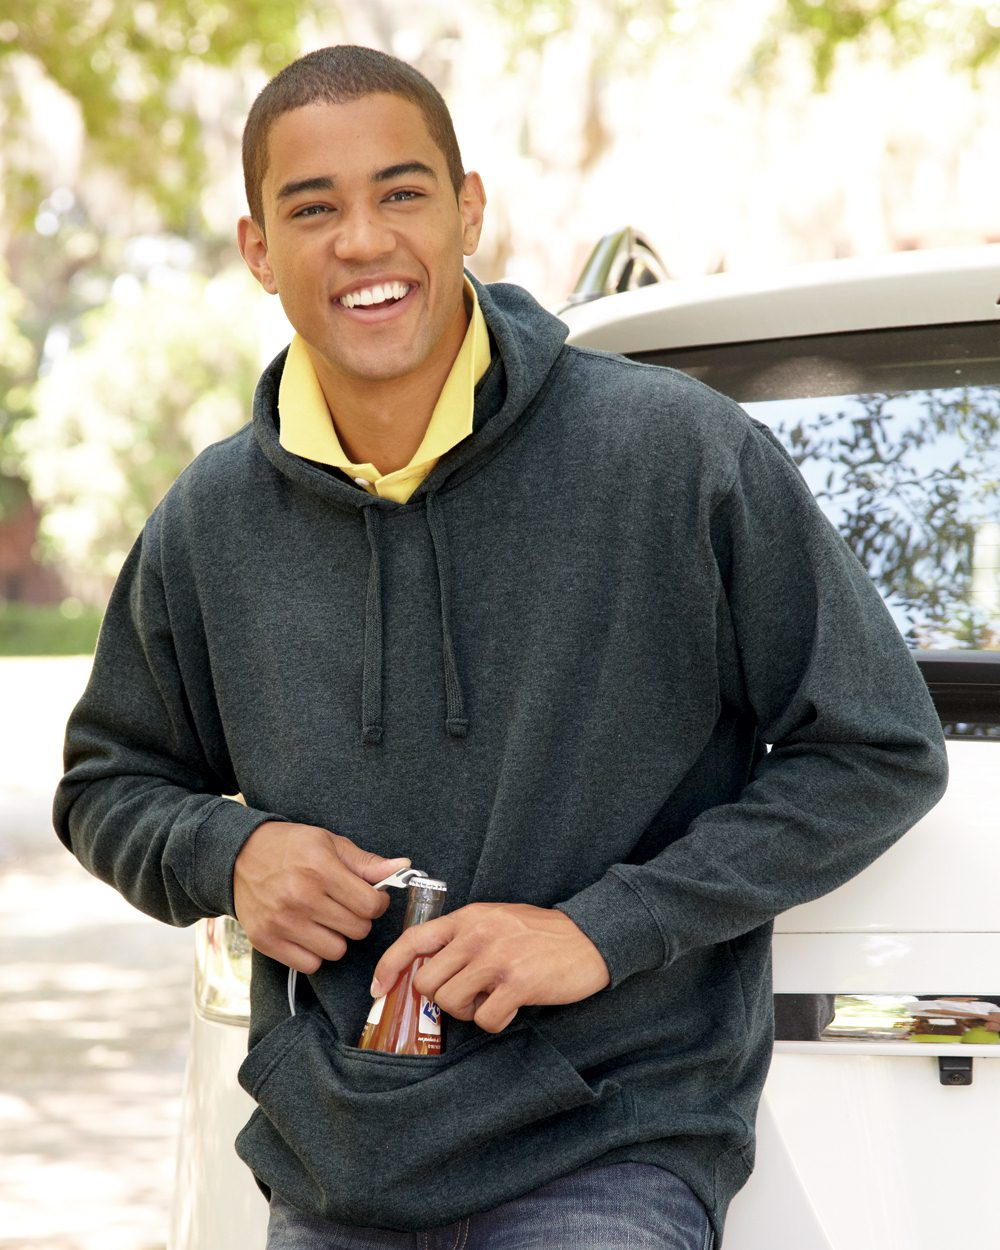 hoody with built-in beverage holder for custom tailgate hoody